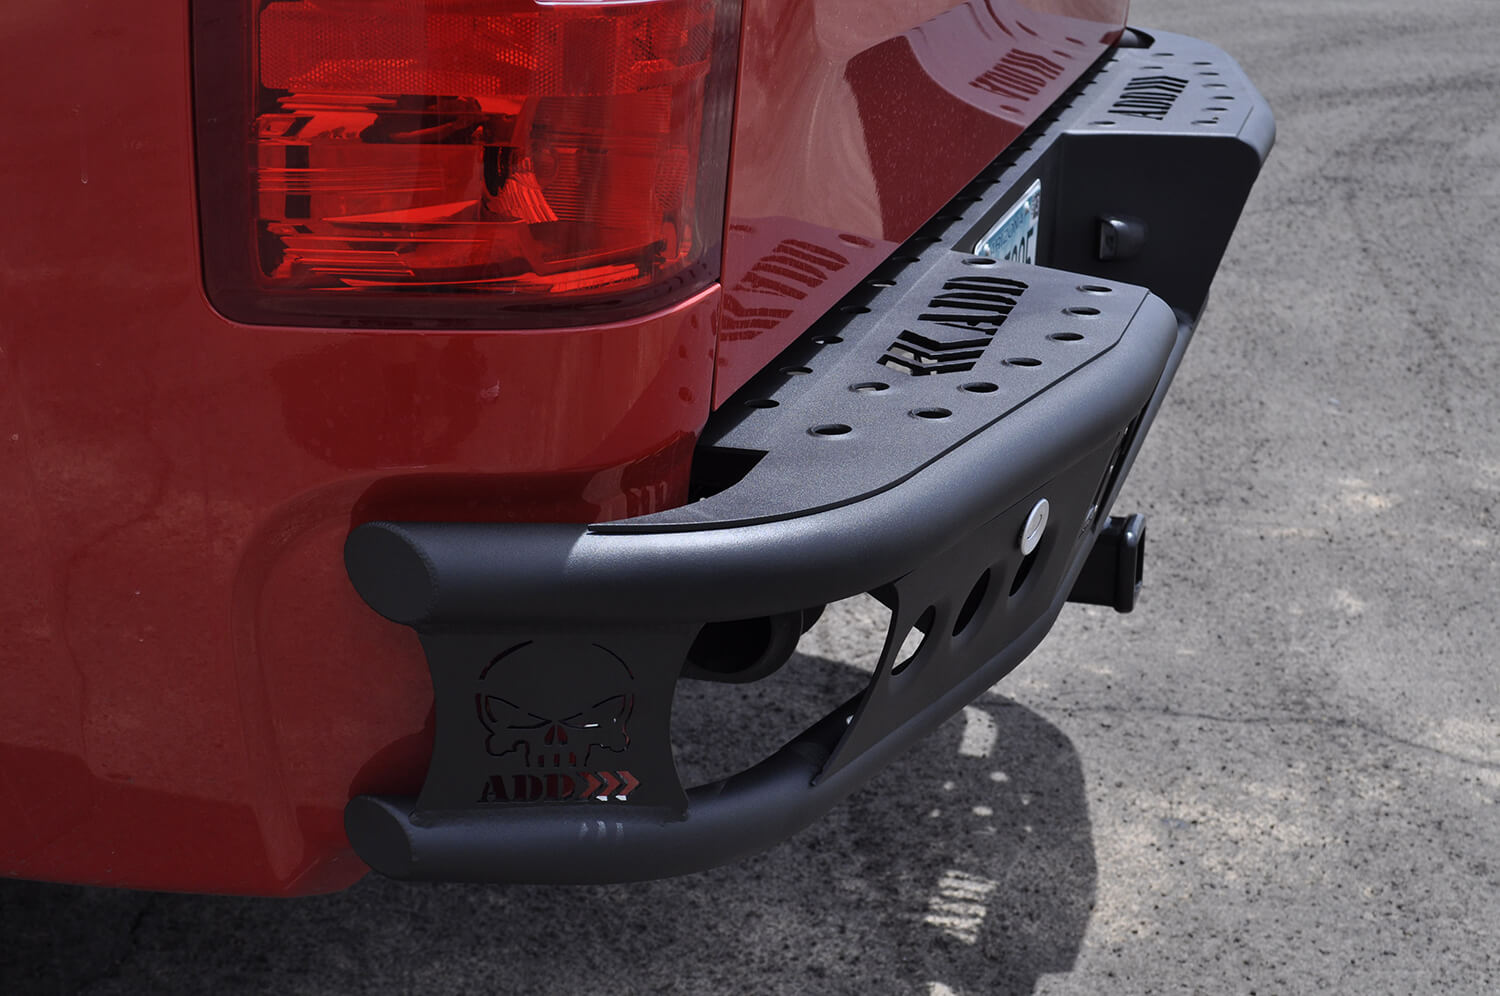 Addictive Desert Design Dimple R Rear Bumper Chevrolet Silverado 1500 07-13